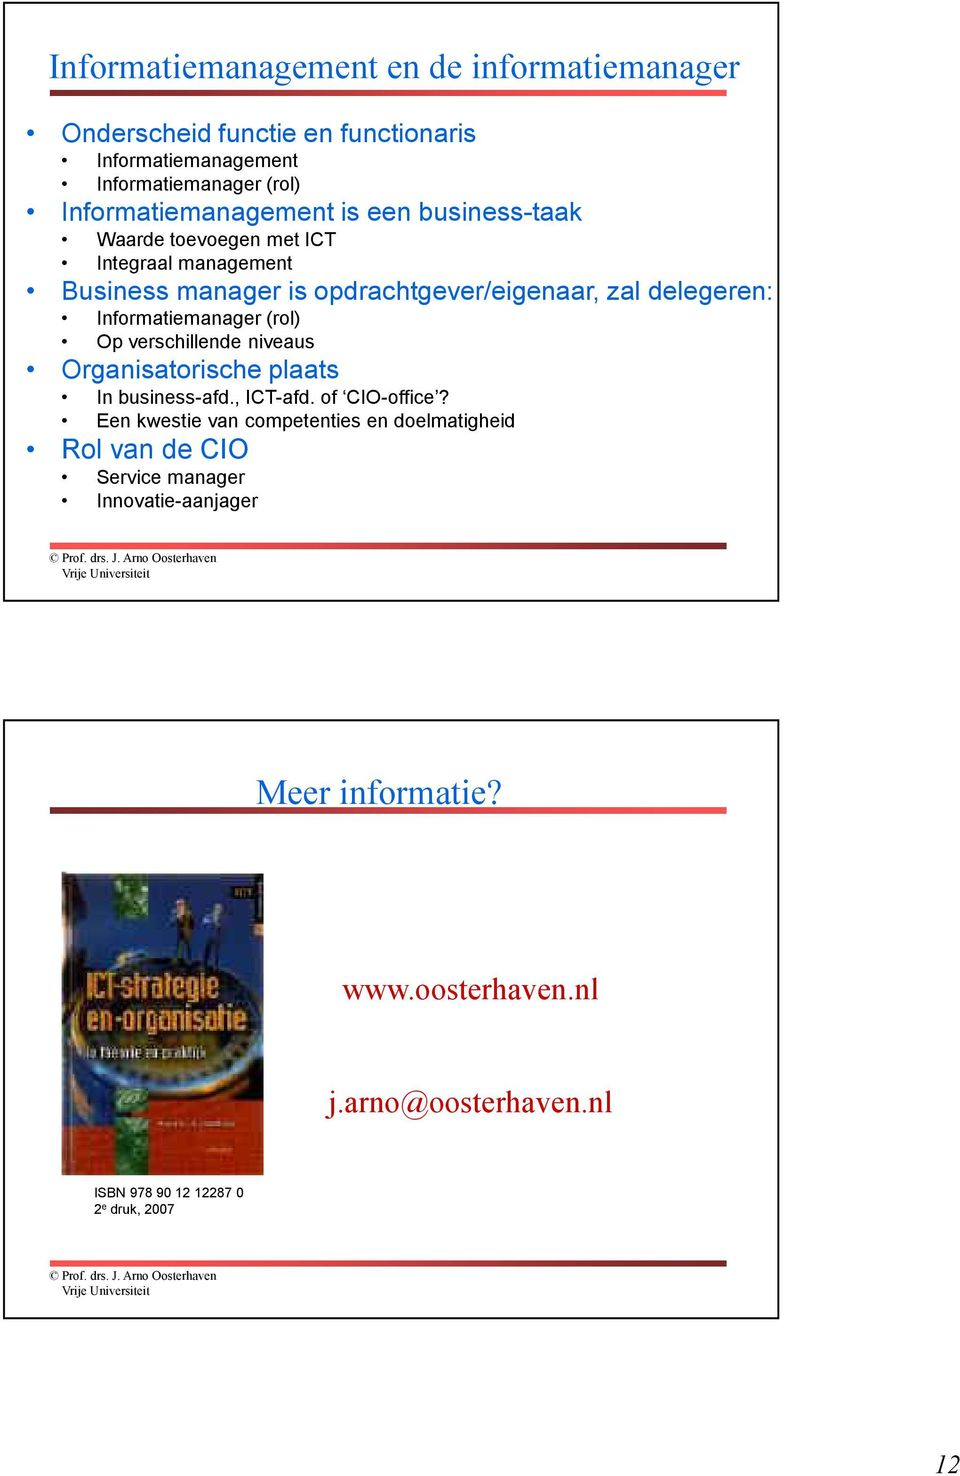 delegeren: Informatiemanager (rol) Op verschillende niveaus Organisatorische plaats In business-afd., ICT-afd. of CIO-office?